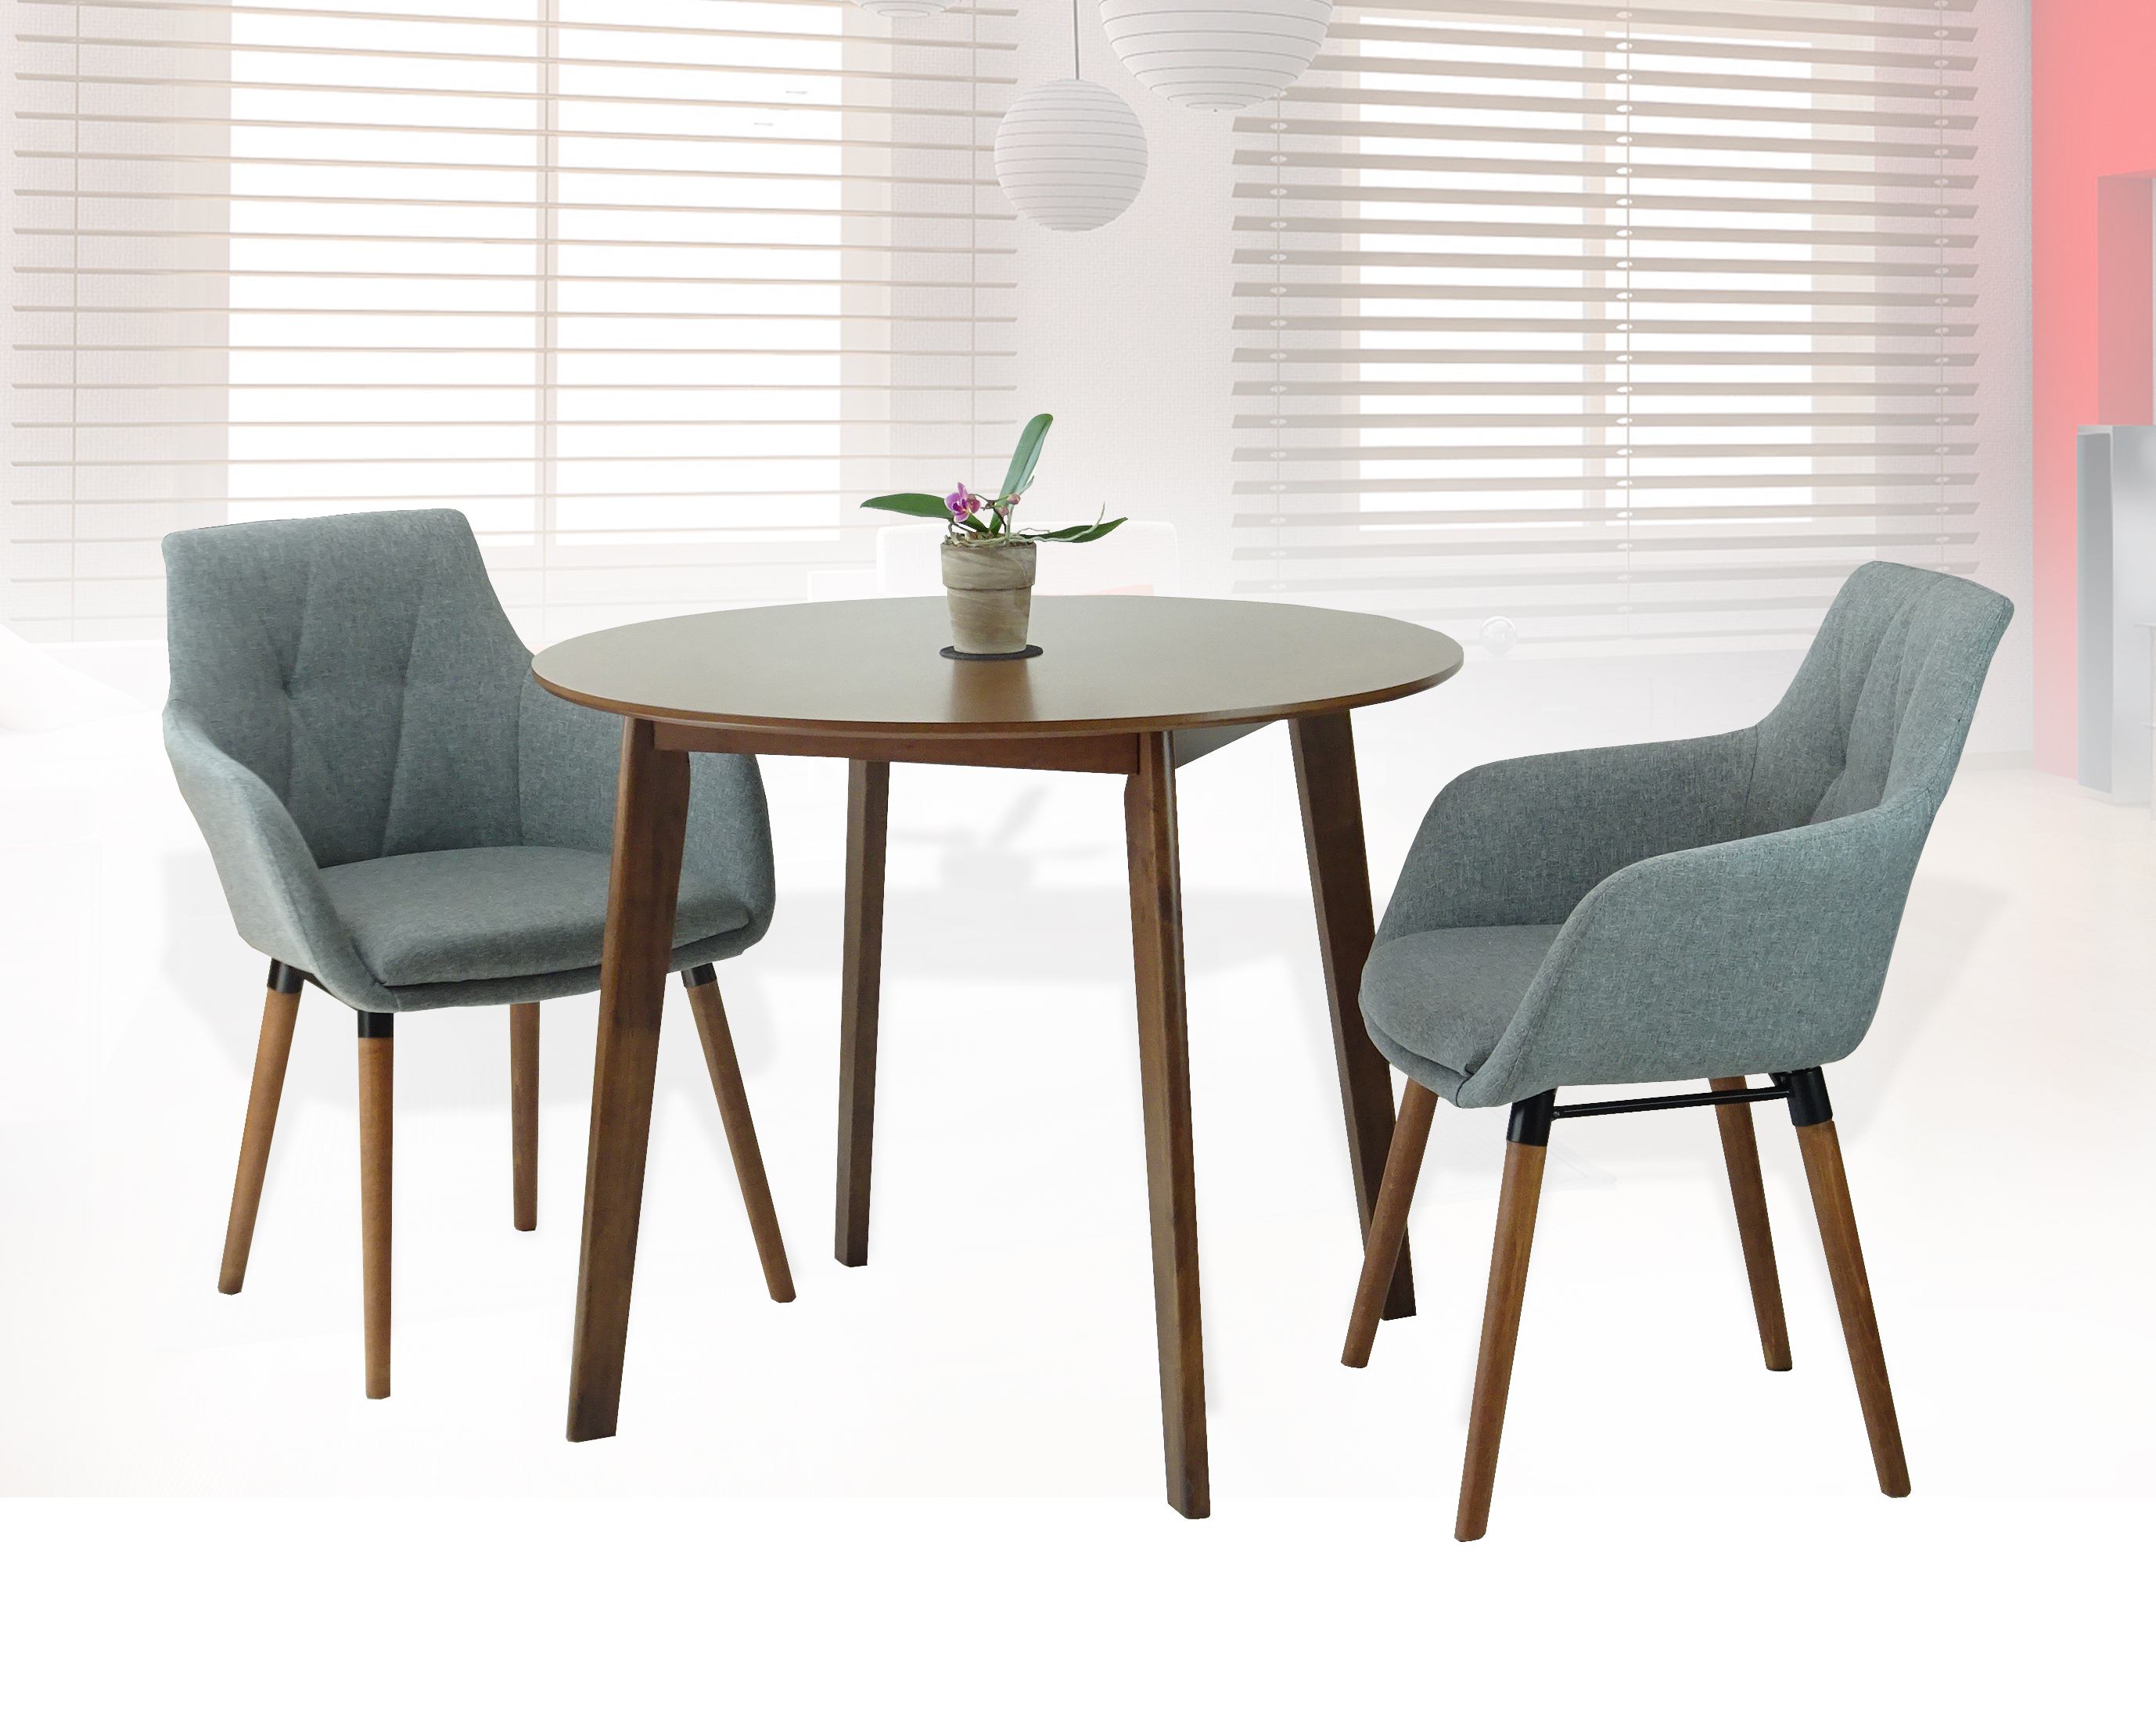 Buy Dining Kitchen Set Of 3 Round Wooden Medium Brown Table With 2 Alba Armchairs Gray Color In USA Best Price Free Shipping